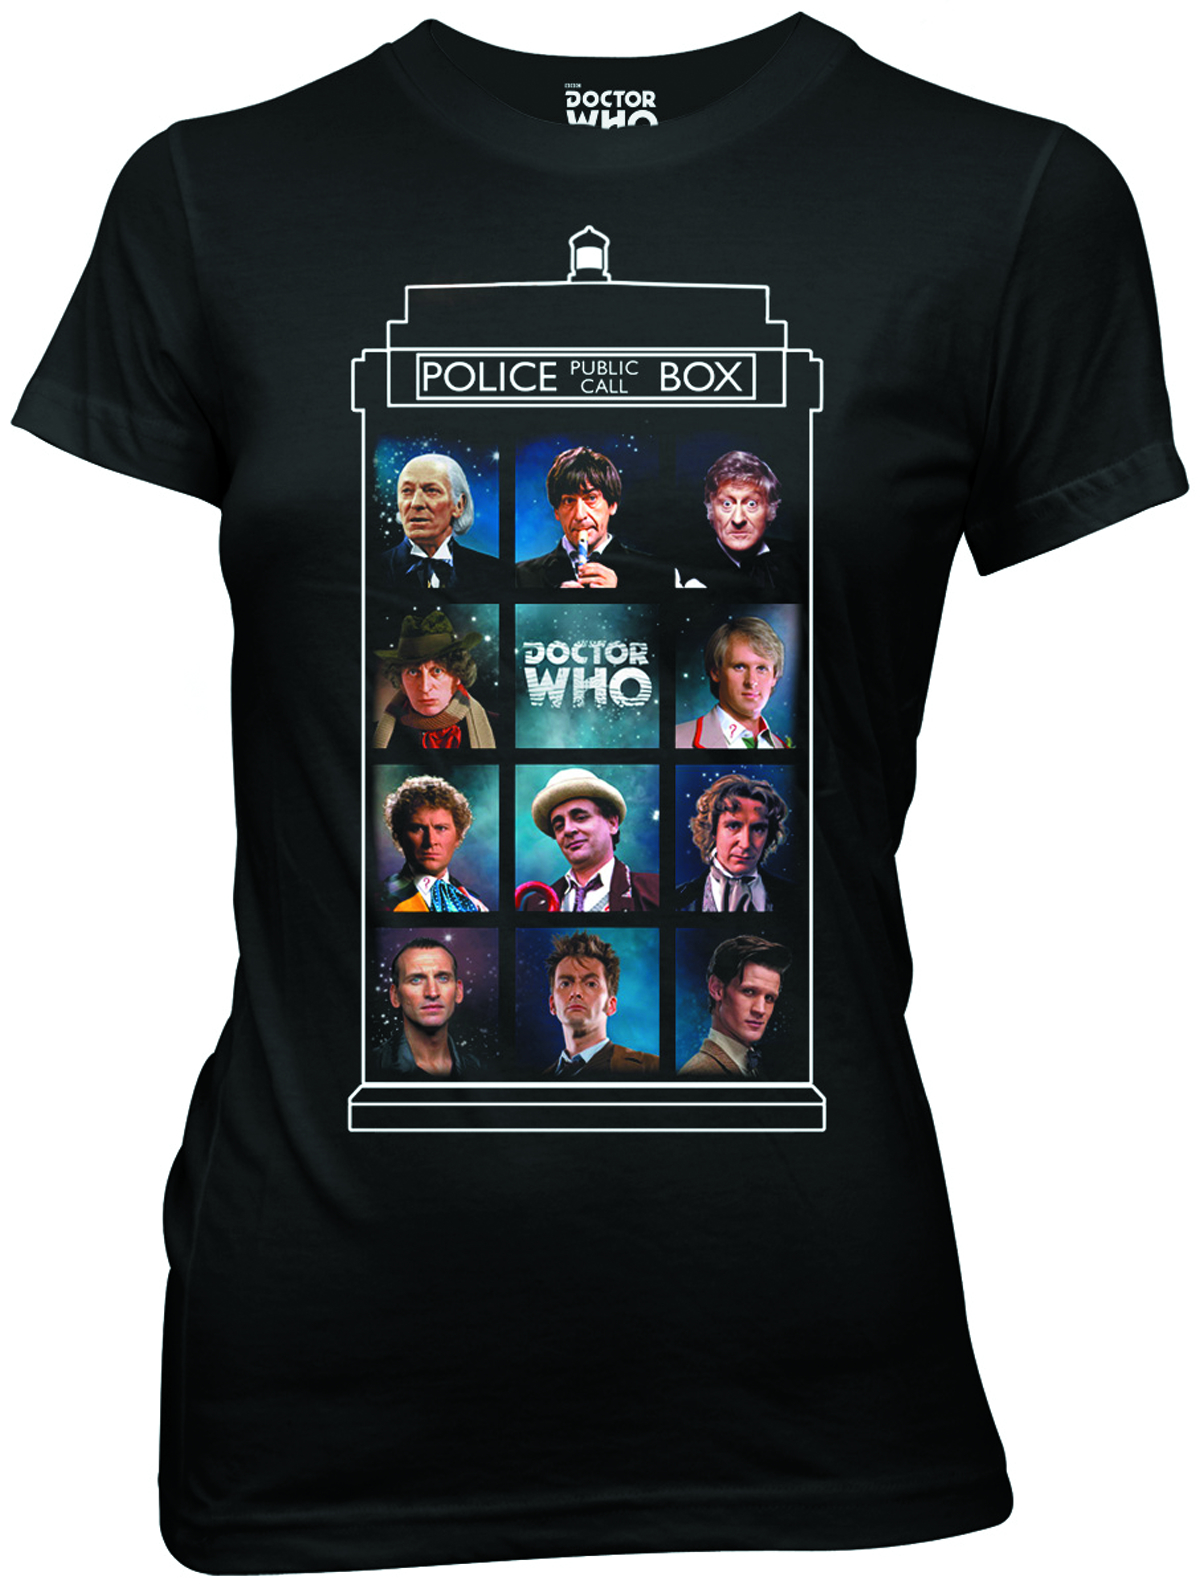 DOCTOR WHO 50 YEARS 11 DOCTORS JRS T/S SM